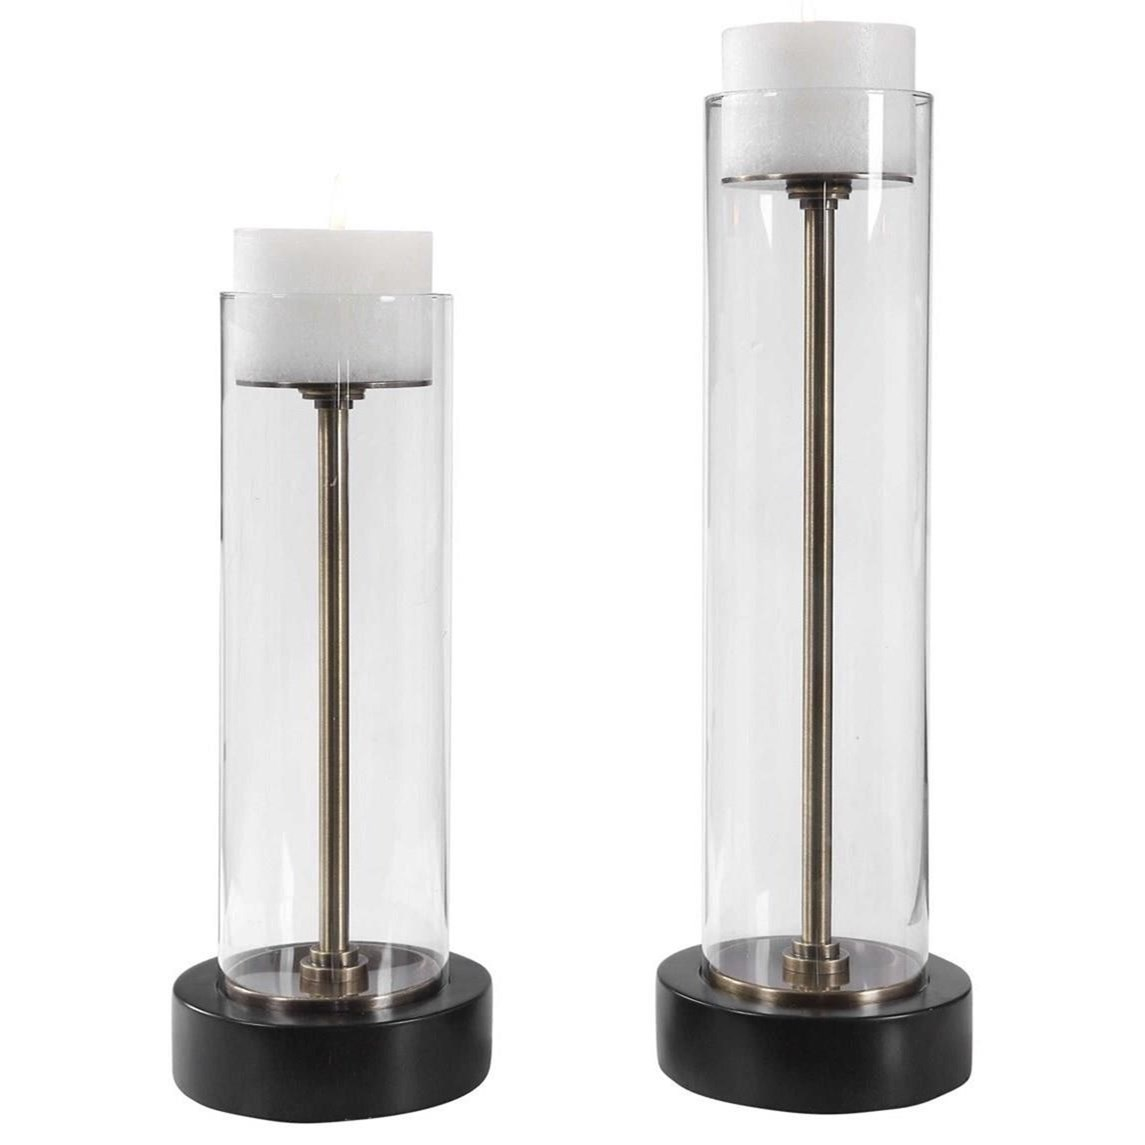 Accessories - Candle Holders Charvi Glass Candleholders, Set/2 by Uttermost at Pedigo Furniture